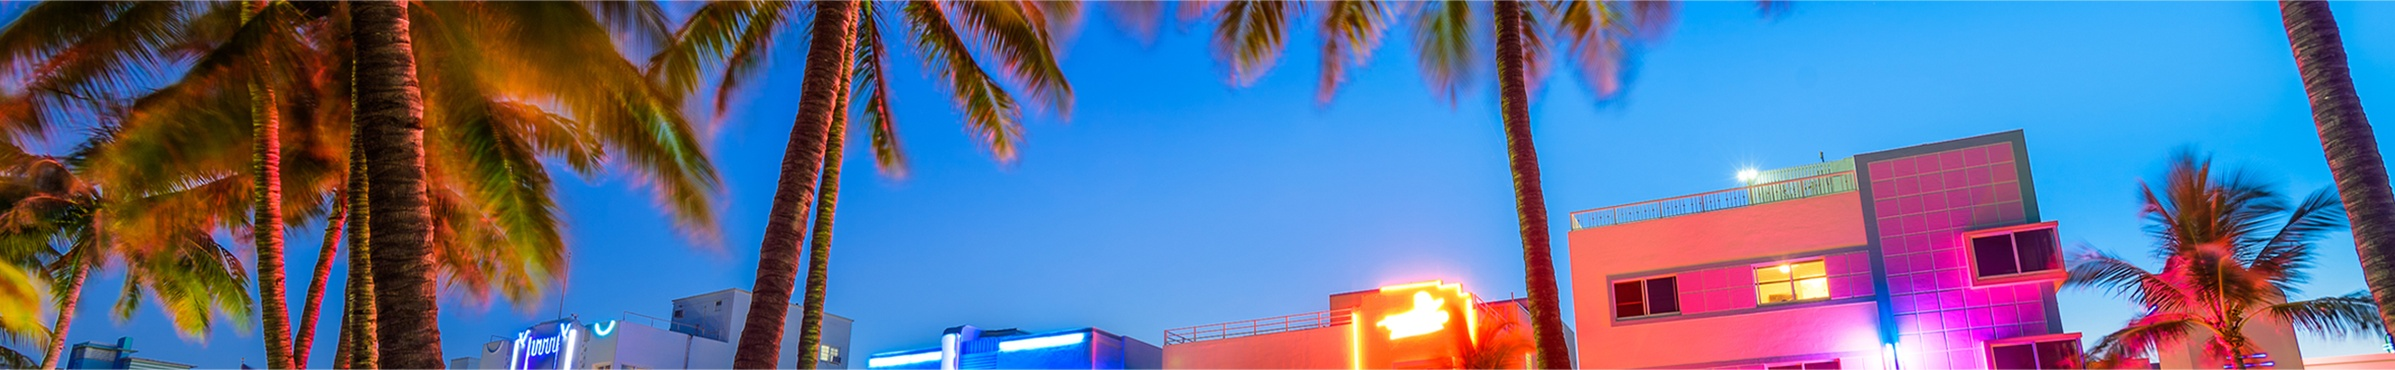 city of miami beach | the official website of the city of miami